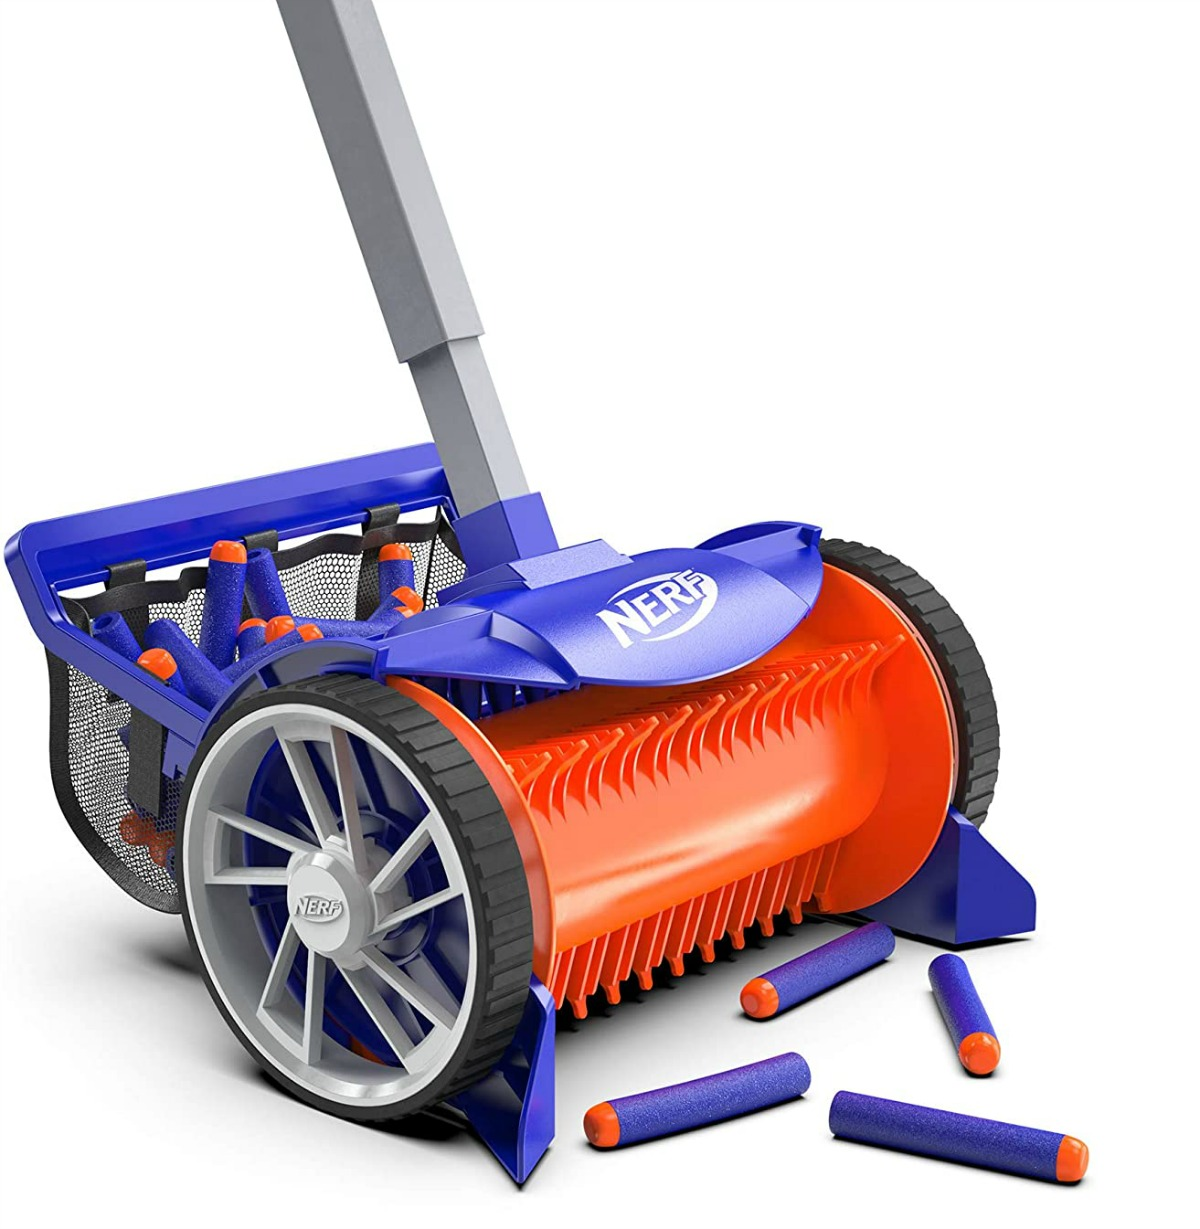 stock image of nerf sweeper collecting nerf darts